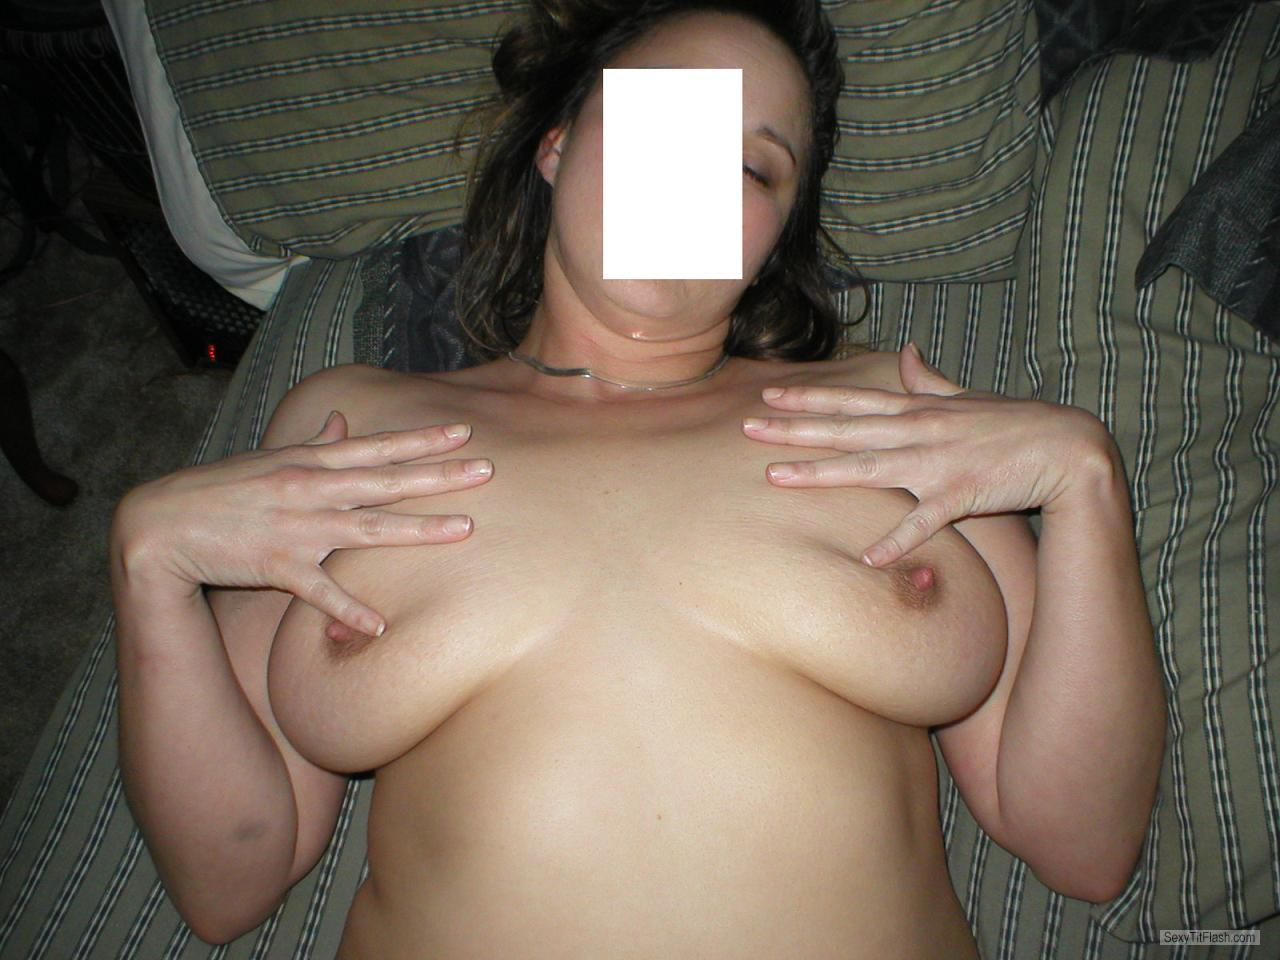 Tit Flash: My Big Tits - Naughty Mommy from United States